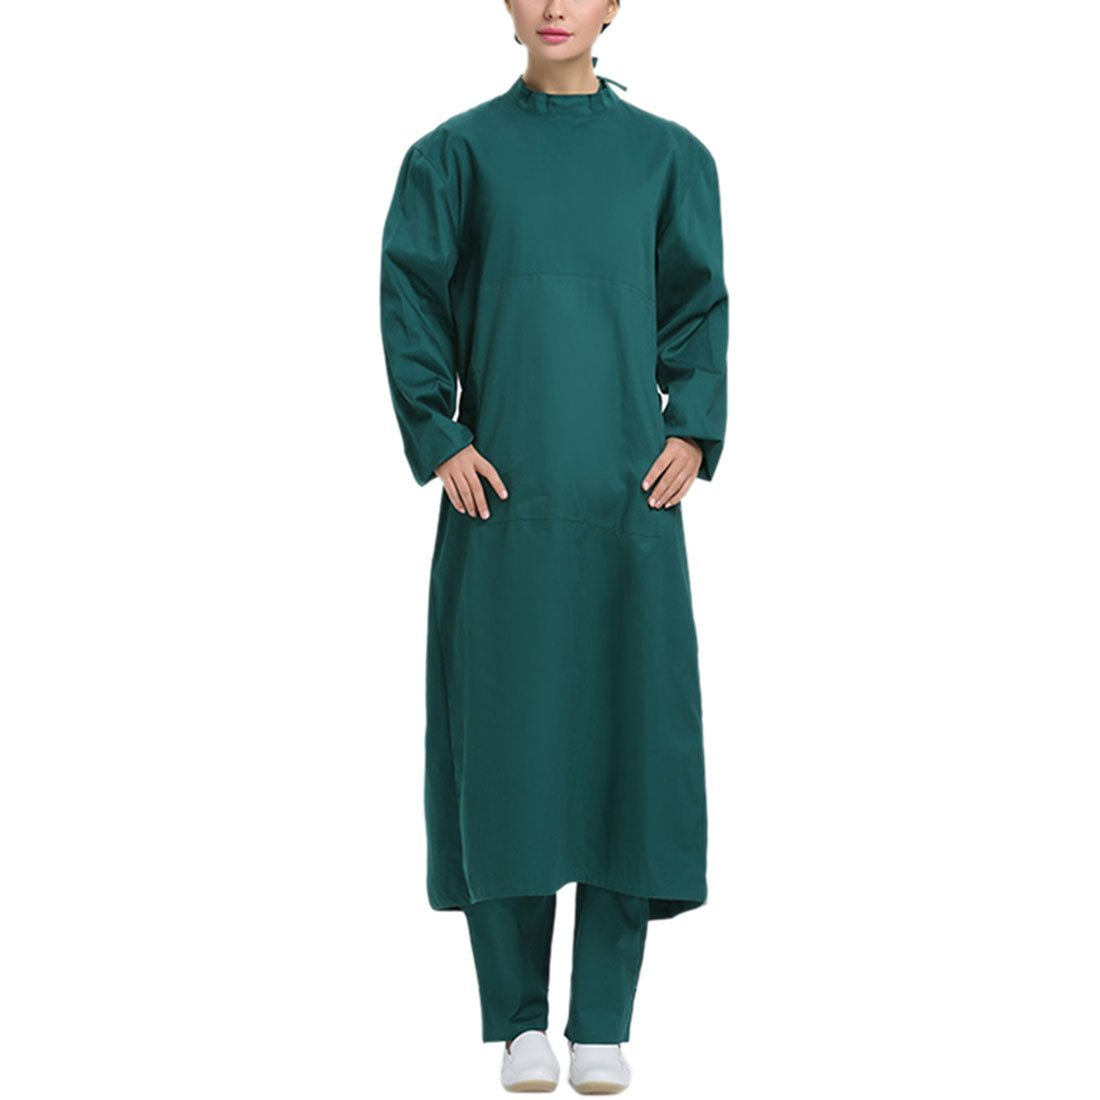 Pinji Scrub Gown Semi-coated Cotton Surgical Clothes High Temperature Resistance Workwear for Hospital Green(Women) XL by Pinji